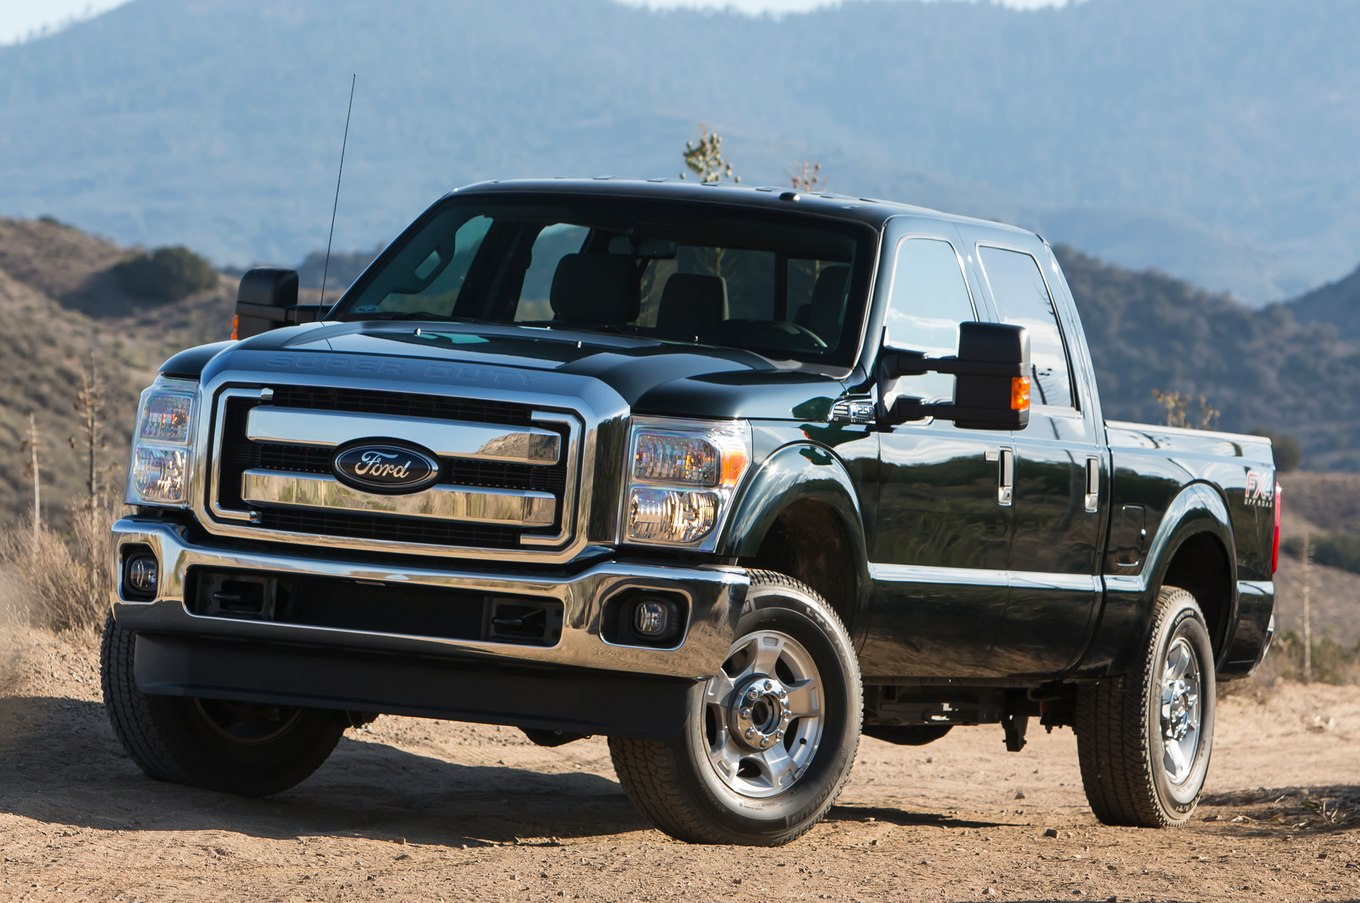 Ford f-250 photo - 5